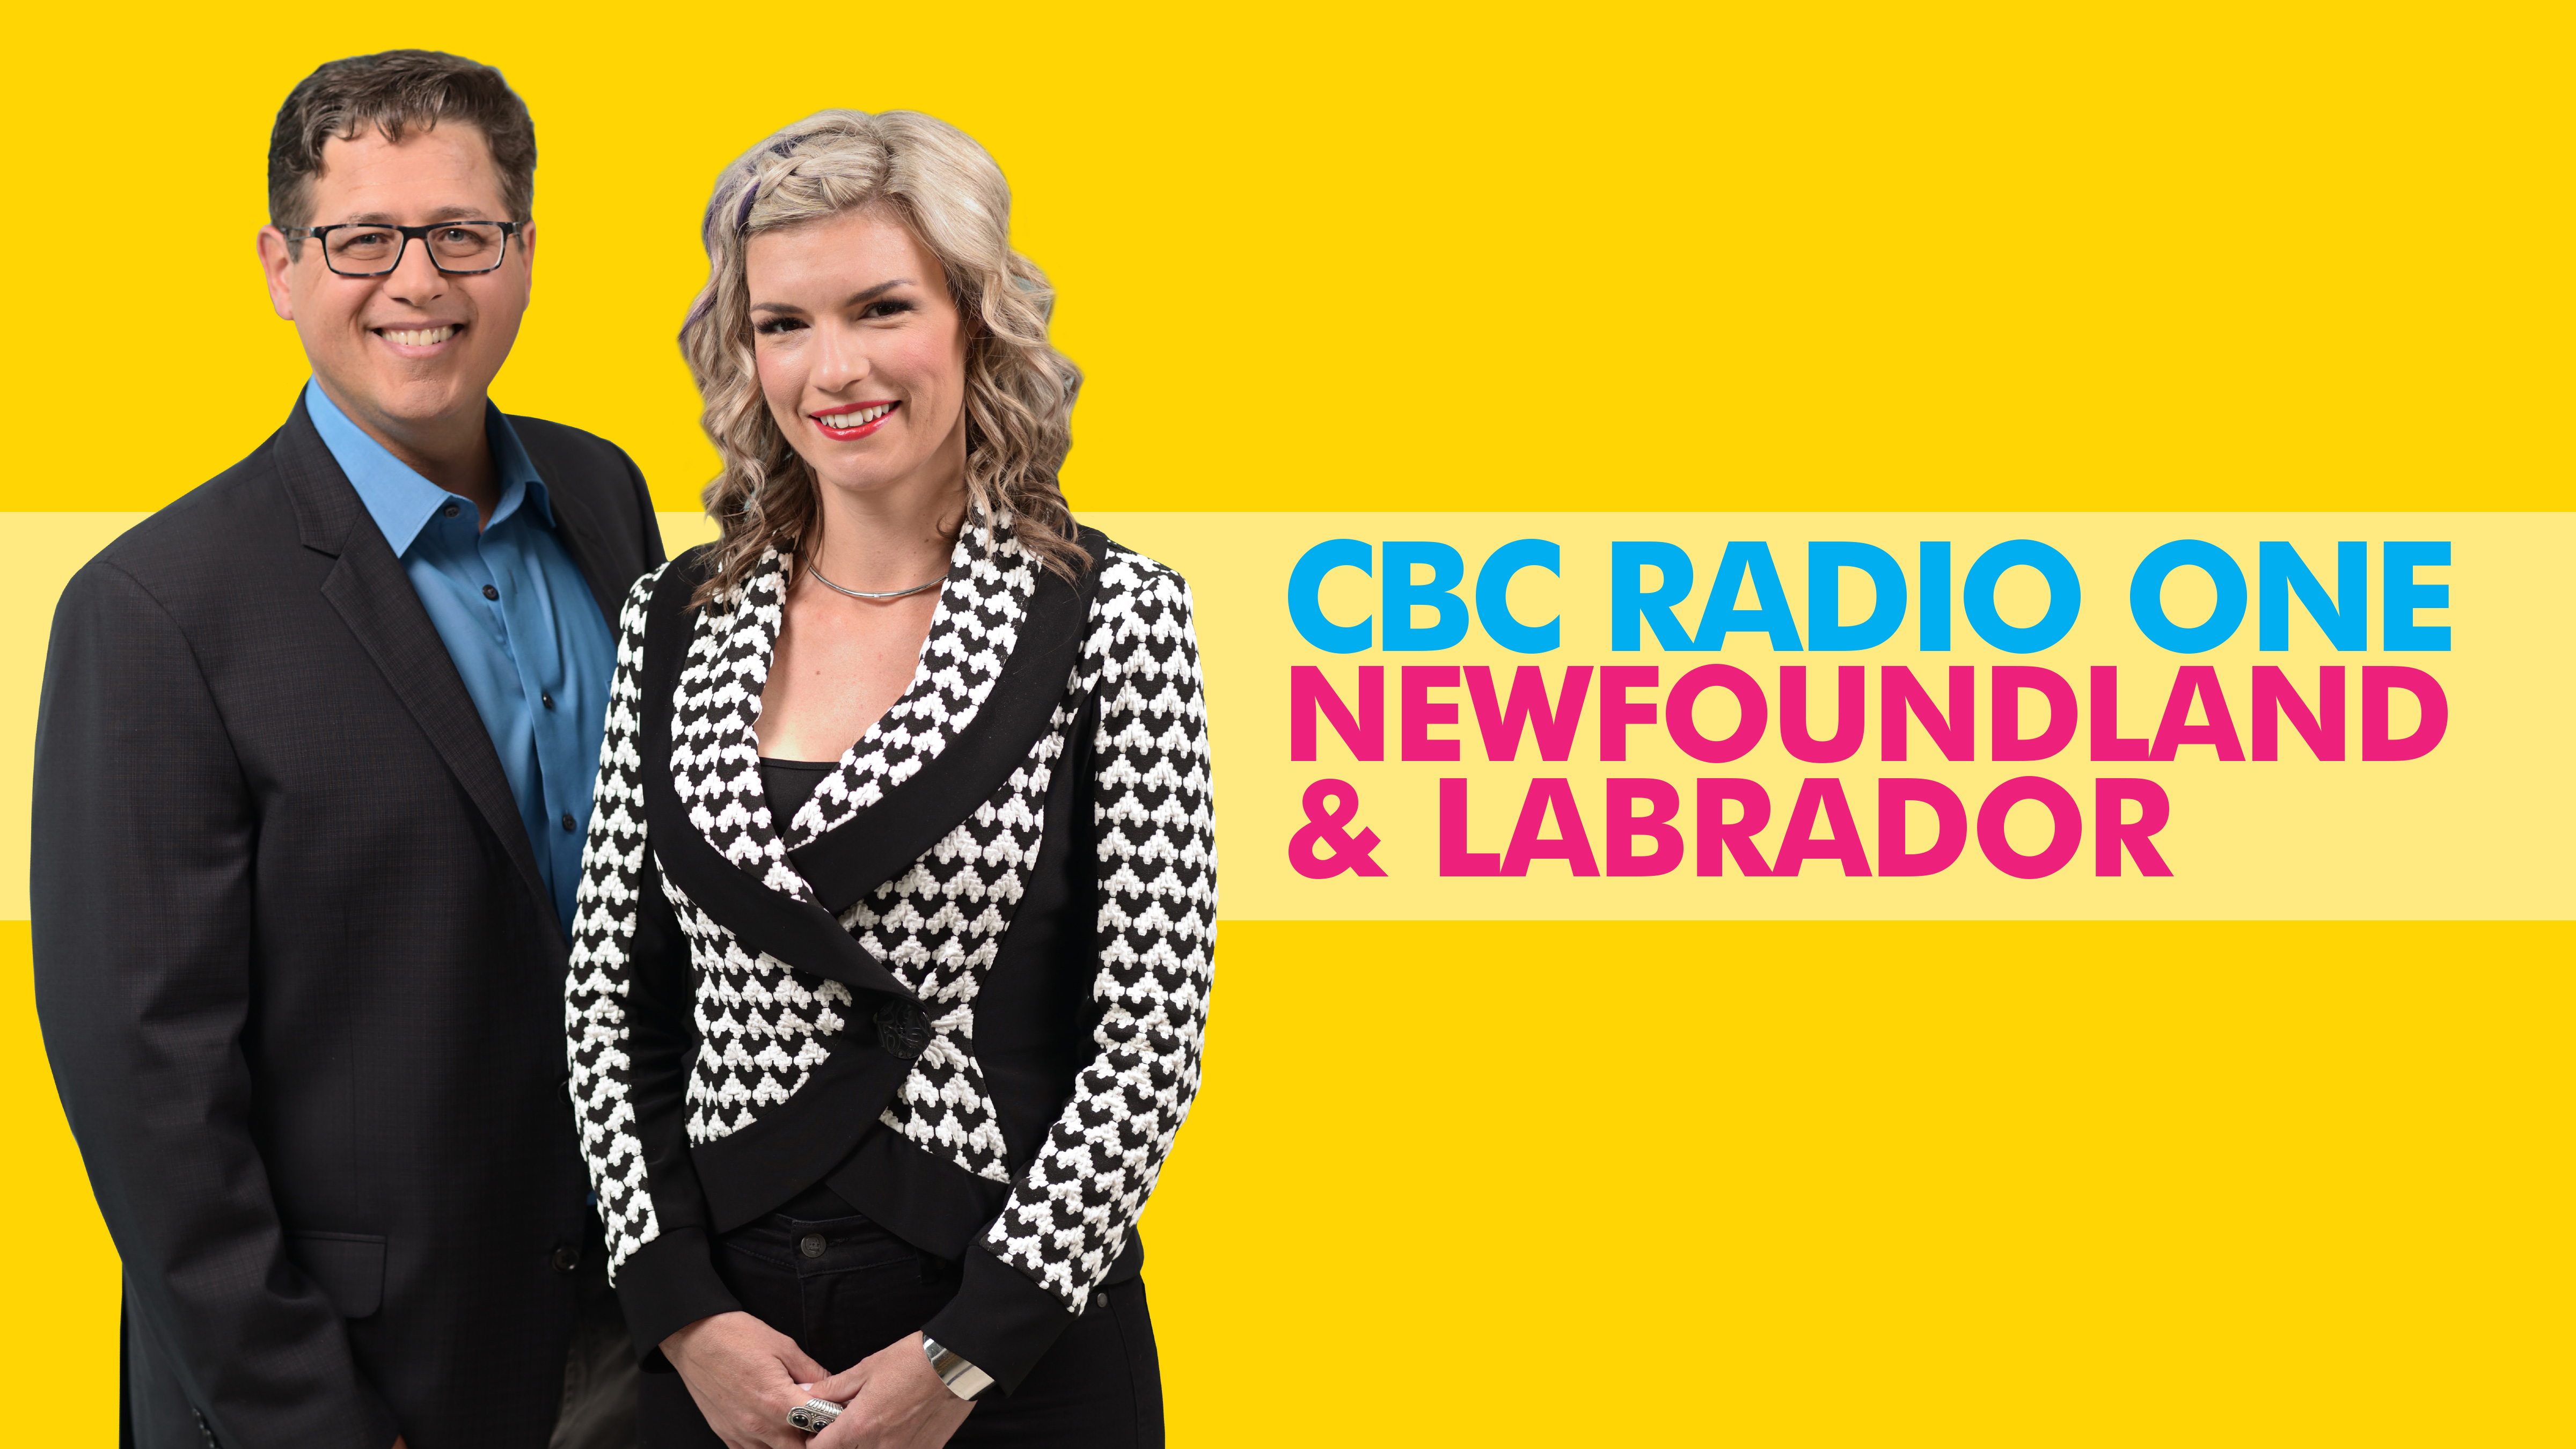 CBC Radio One Newfoundland & Labrador